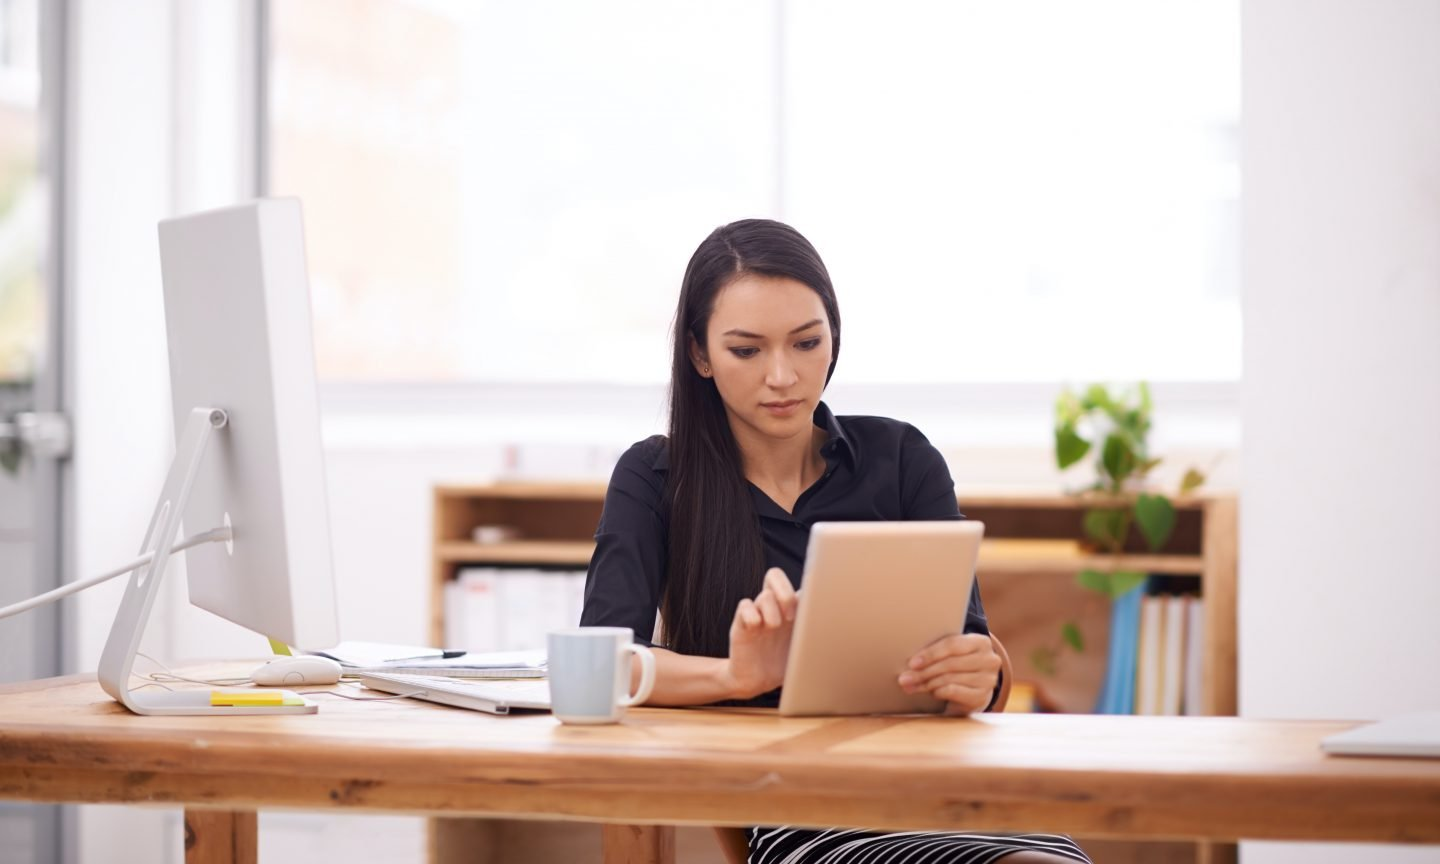 How to Stand Out in a Tough Job Market - NerdWallet